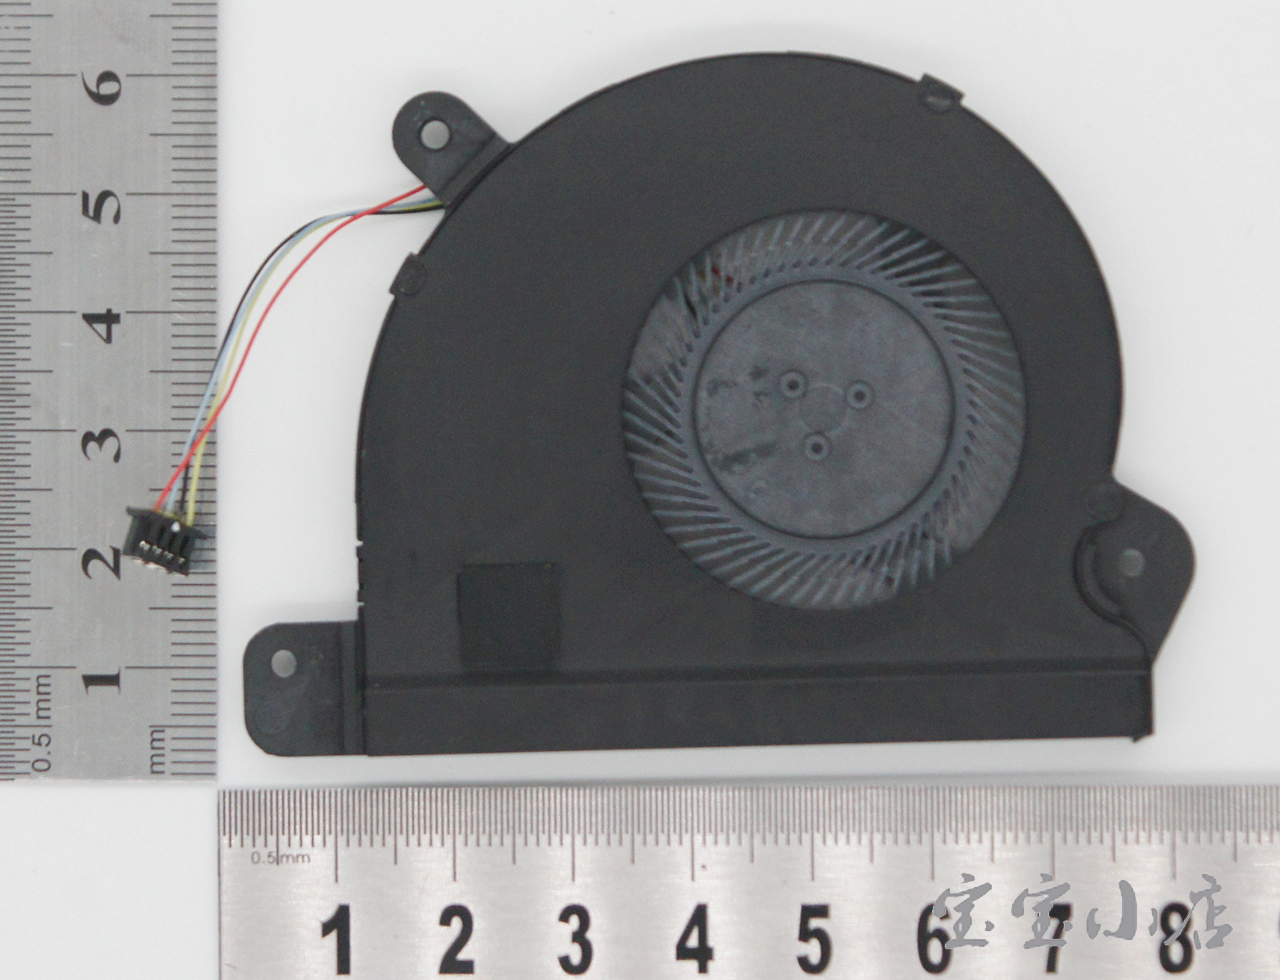 新到货50pcs SUNON EG50050S1-C950-S9A 13N0-TEA0801 13NX00F0AM0601 Cooling Fan 散热风扇